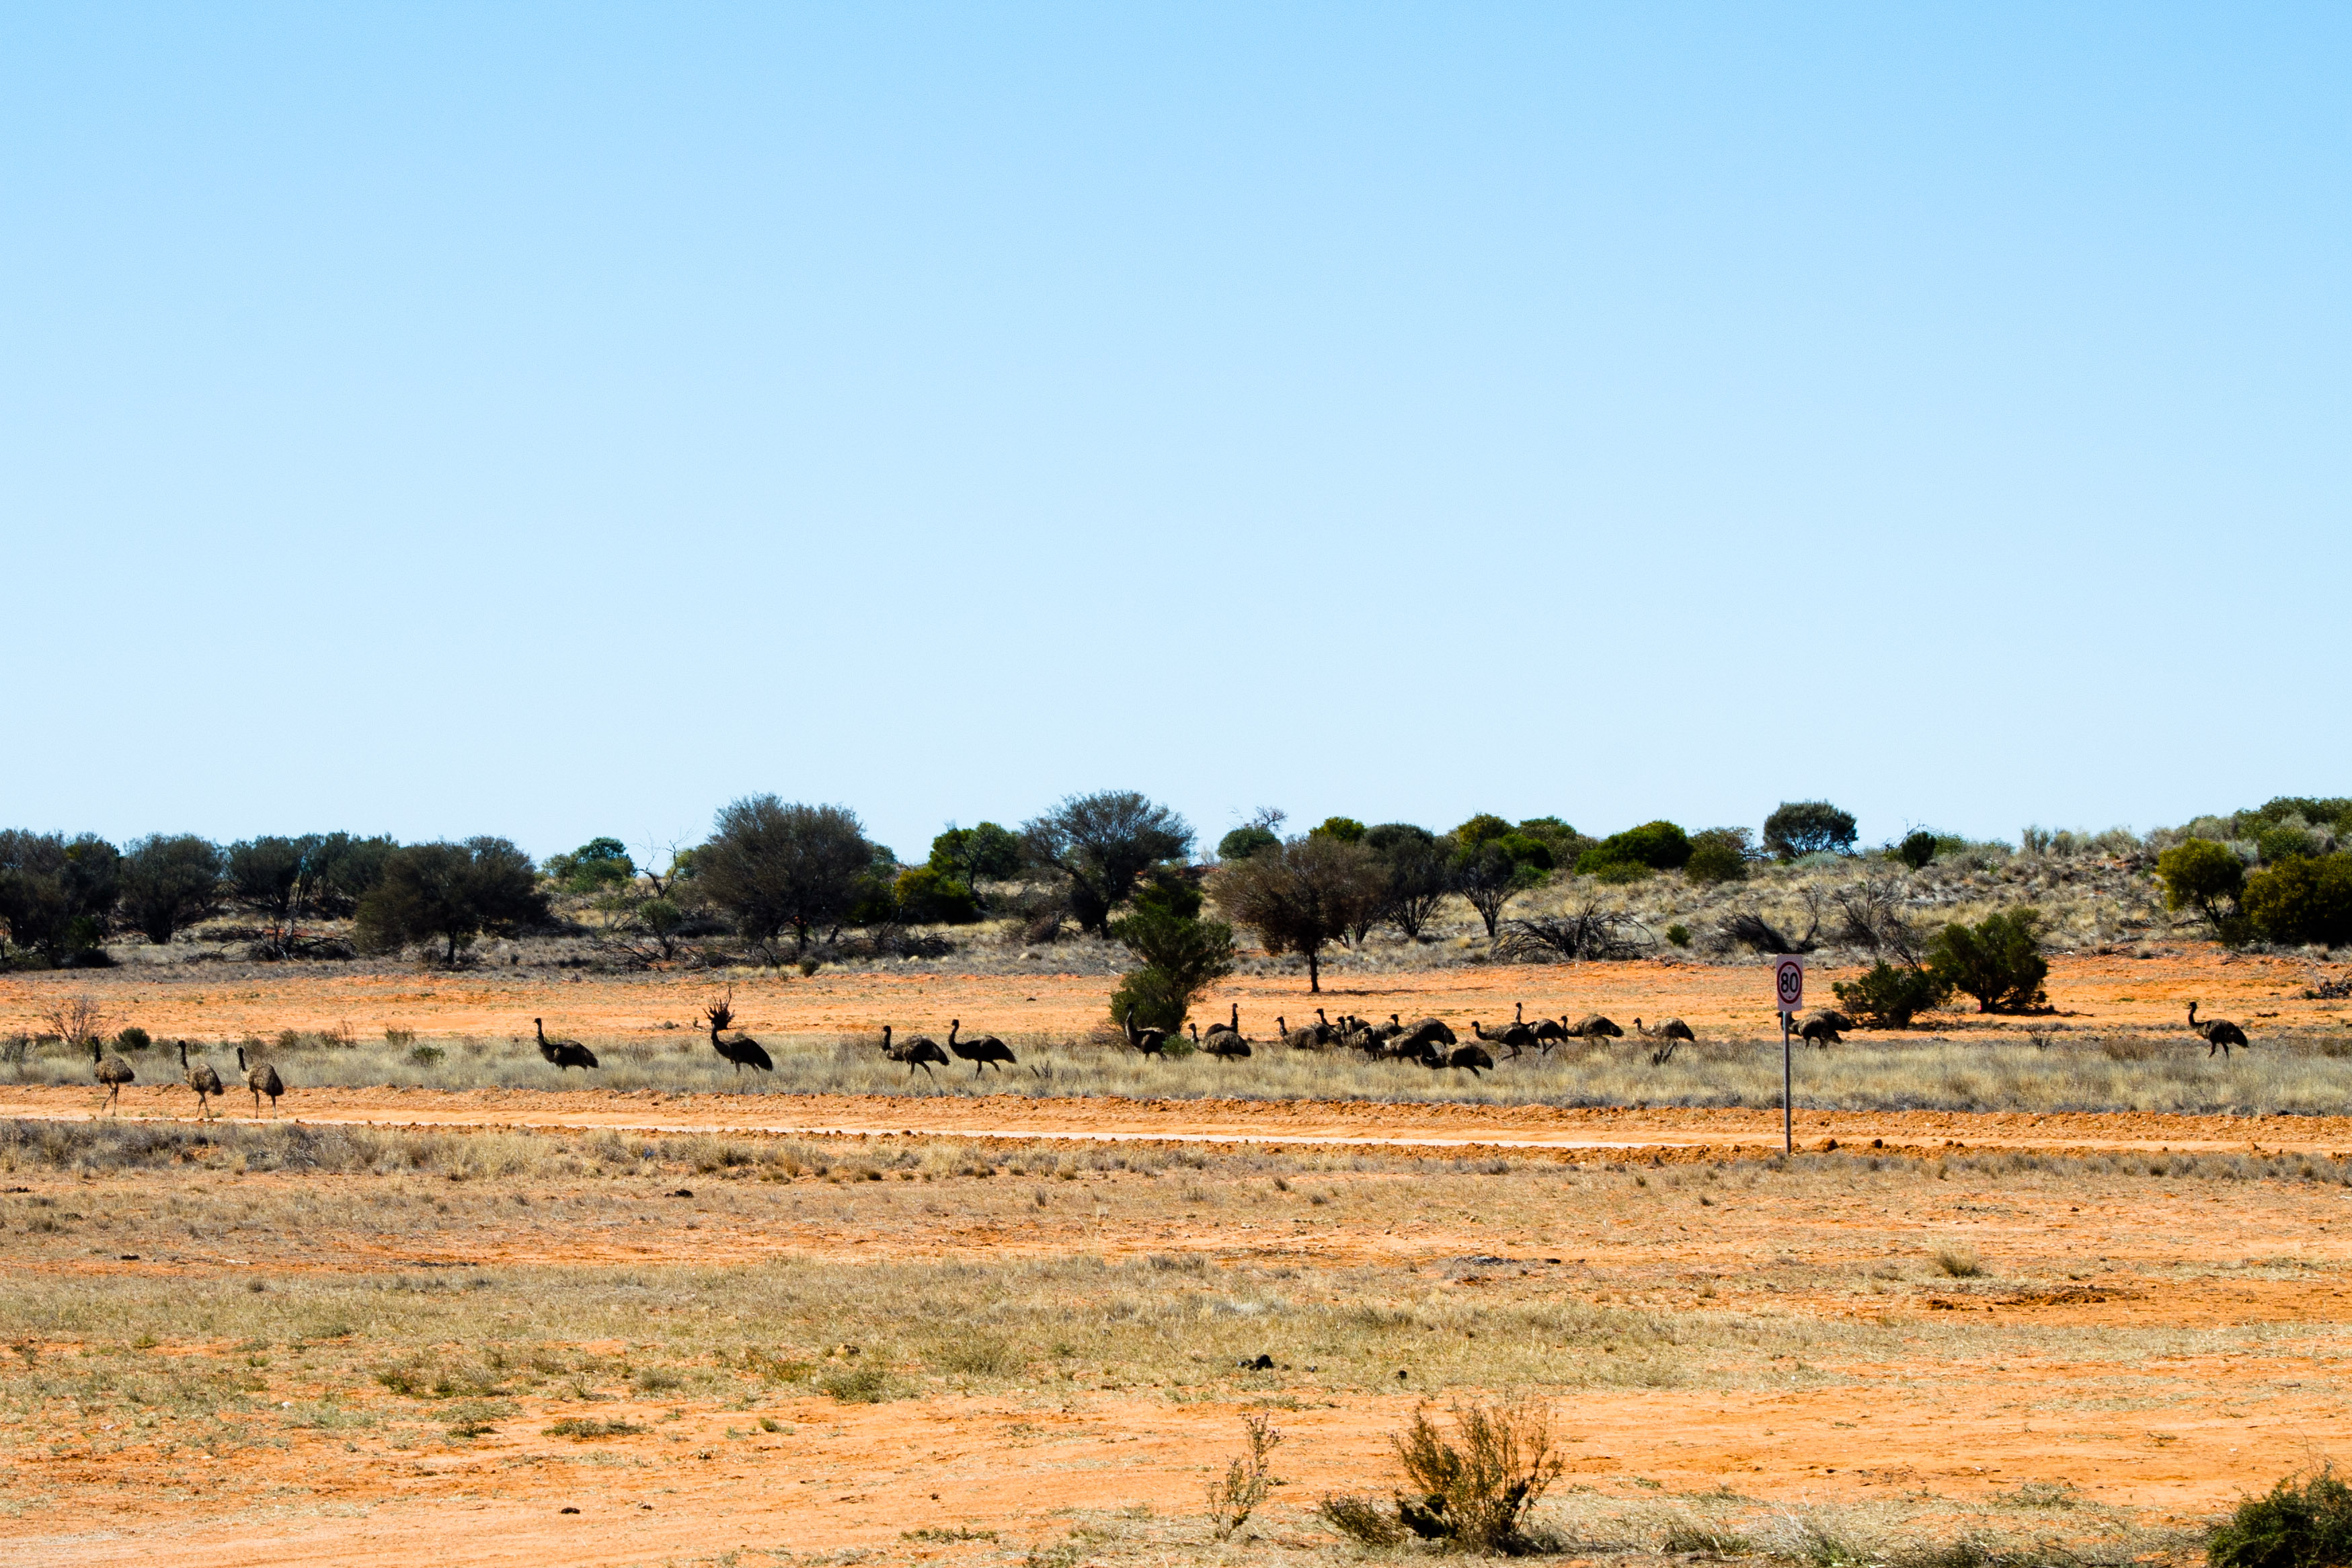 Brisbane to Birdsville via Adelaide {2013 4wd Trip} – Part 2